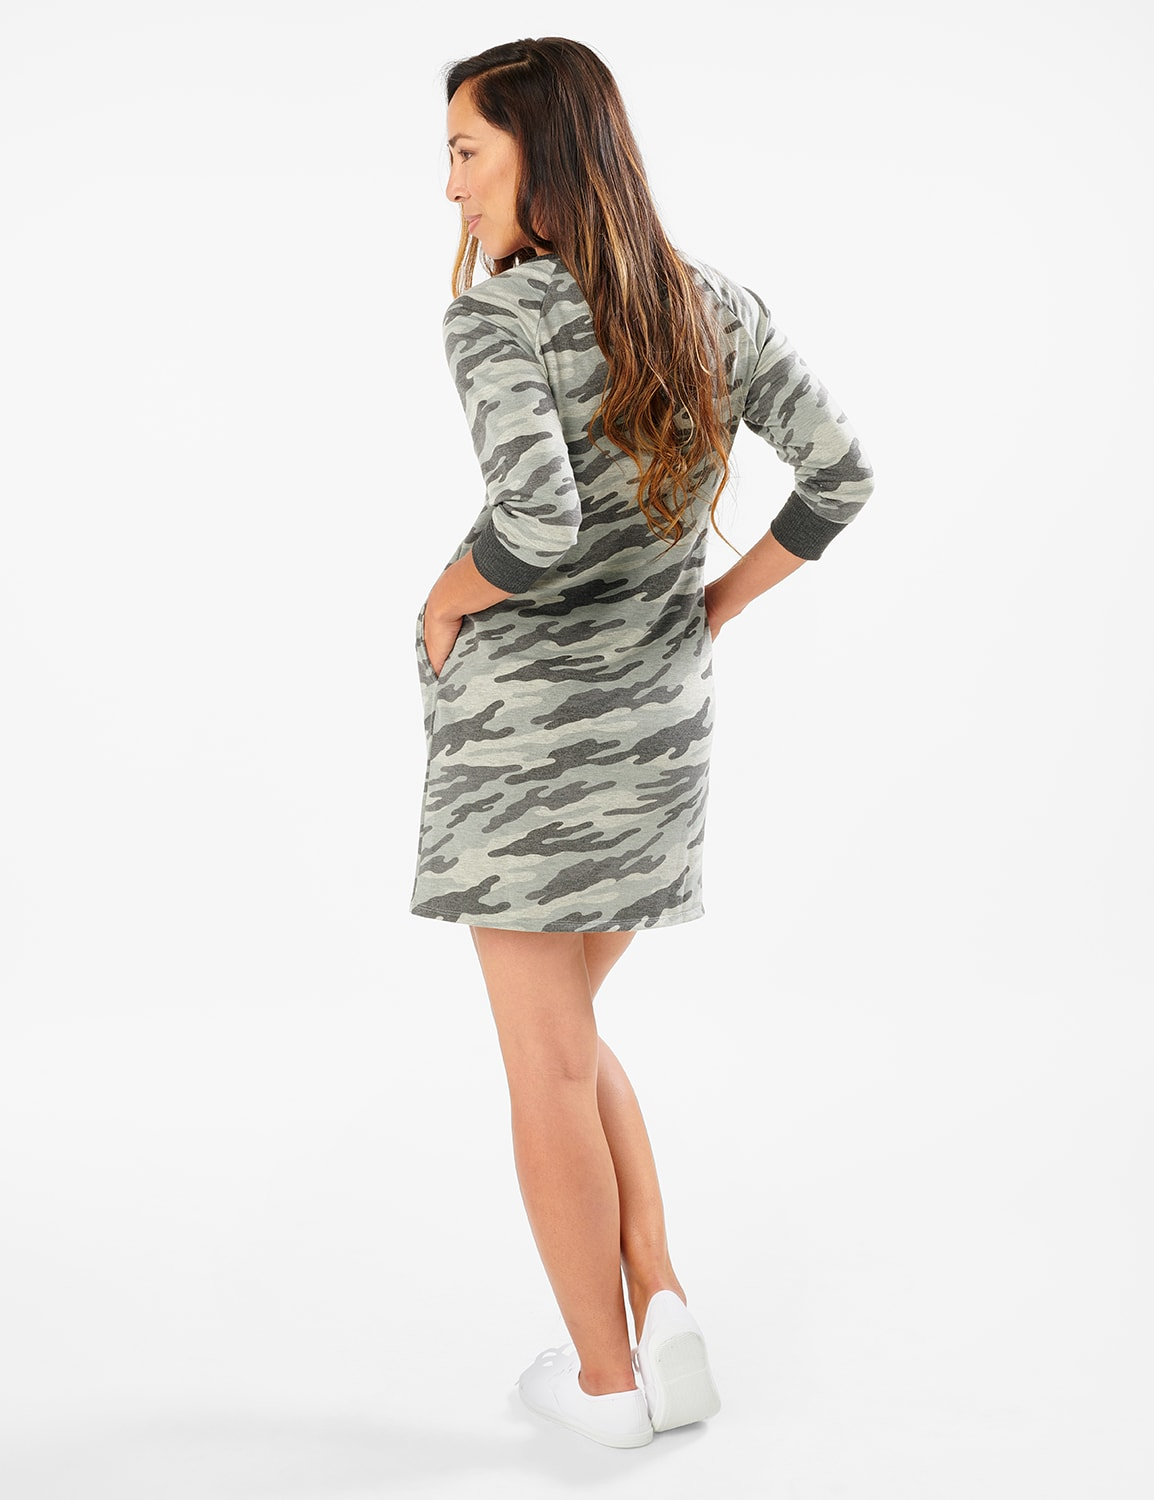 Camouflage Knit Dress - Misses - Charcoal - Front